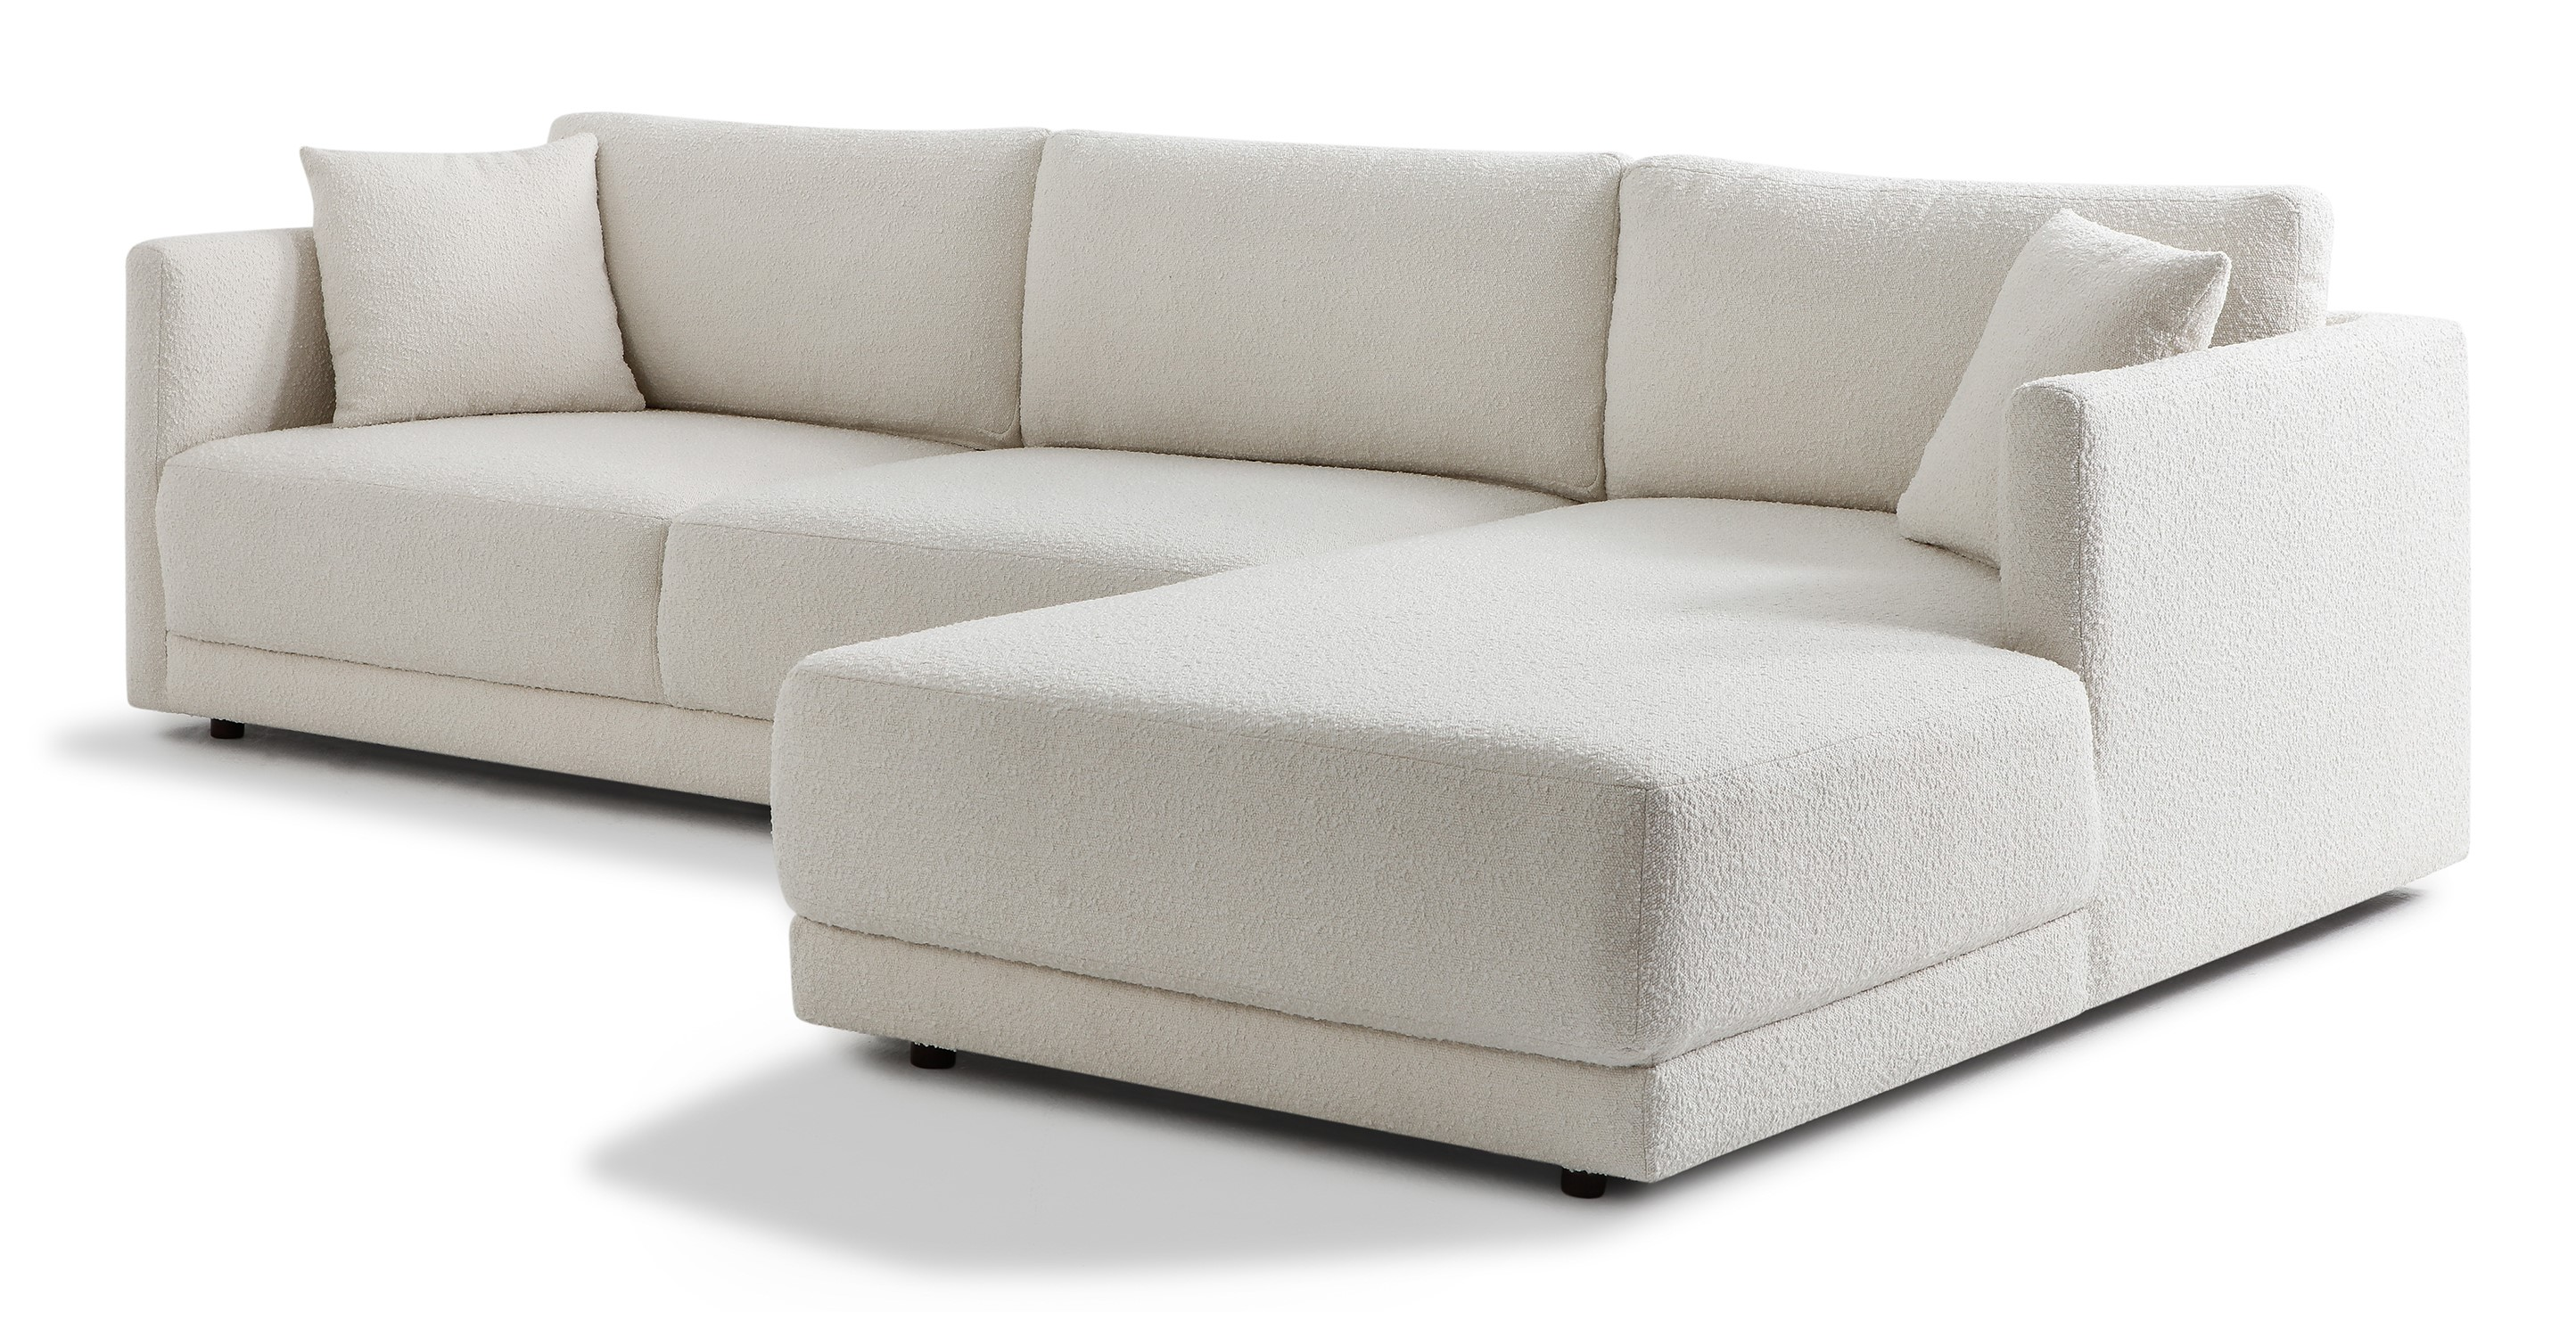 "Domus 115"" Fabric Sofa Sectional Right, Blanc Boucle"